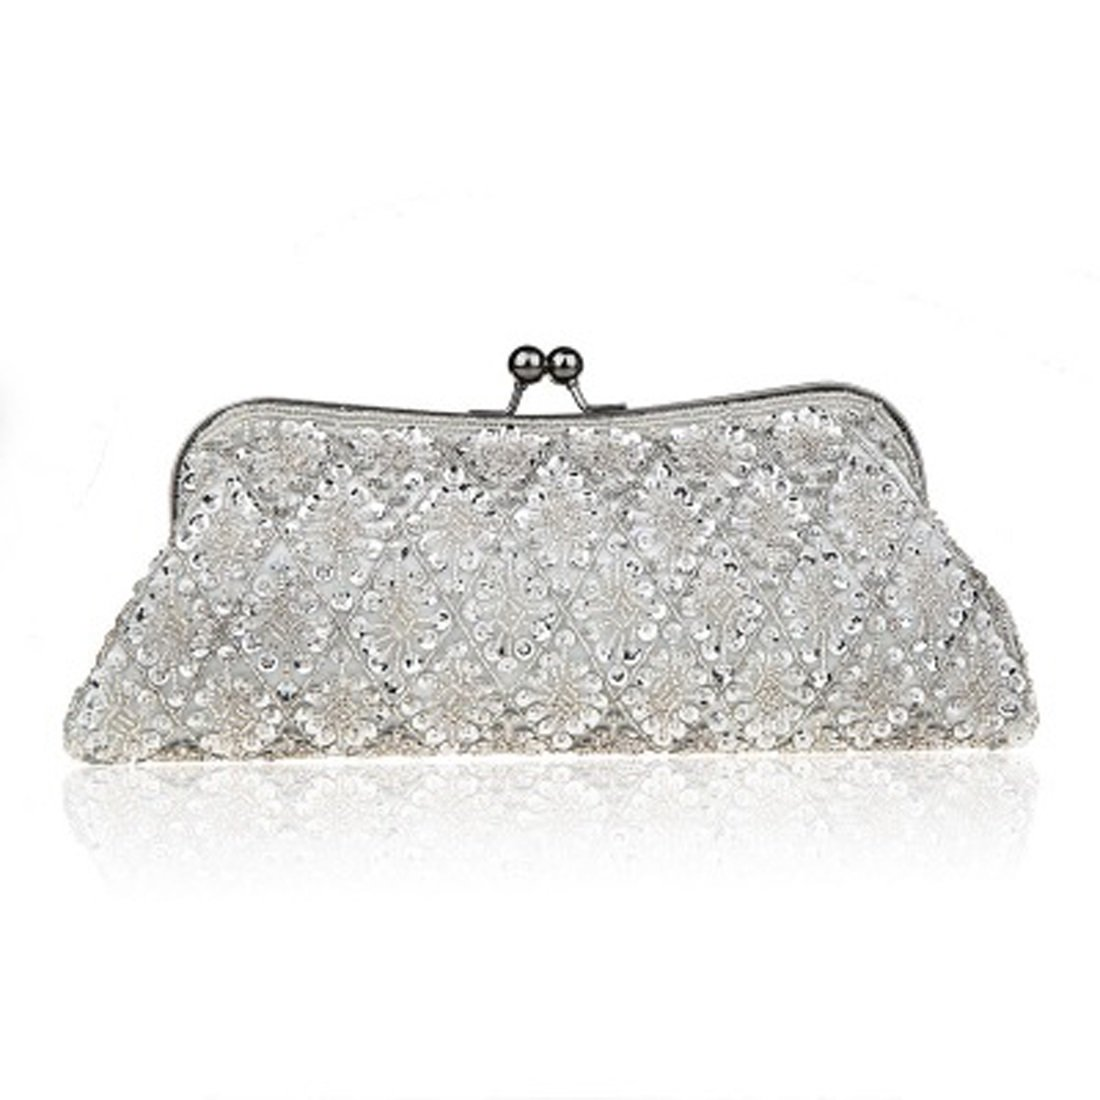 32289d885e6 Amazon.com: Women's Clutch White Balck Red Silver Satin Chain Evening Bag  Silk Chain Vintage Magnetic Buckl (Color : 1): Sports & Outdoors